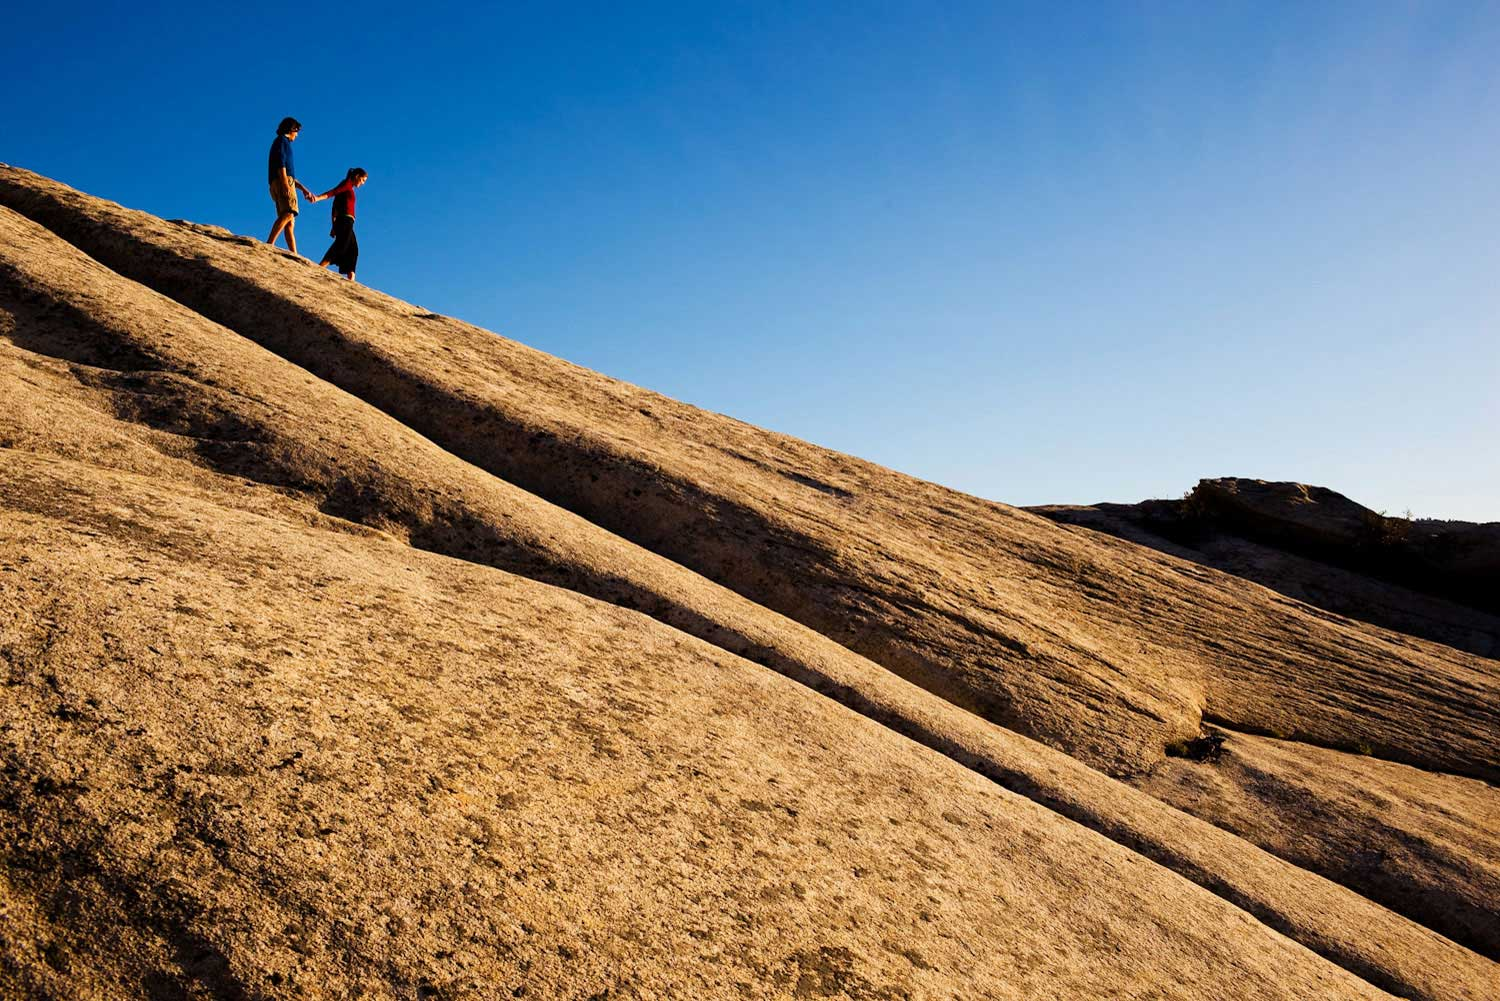 A couple walks down a granit slope at the City of Rocks National Monument, Idaho.